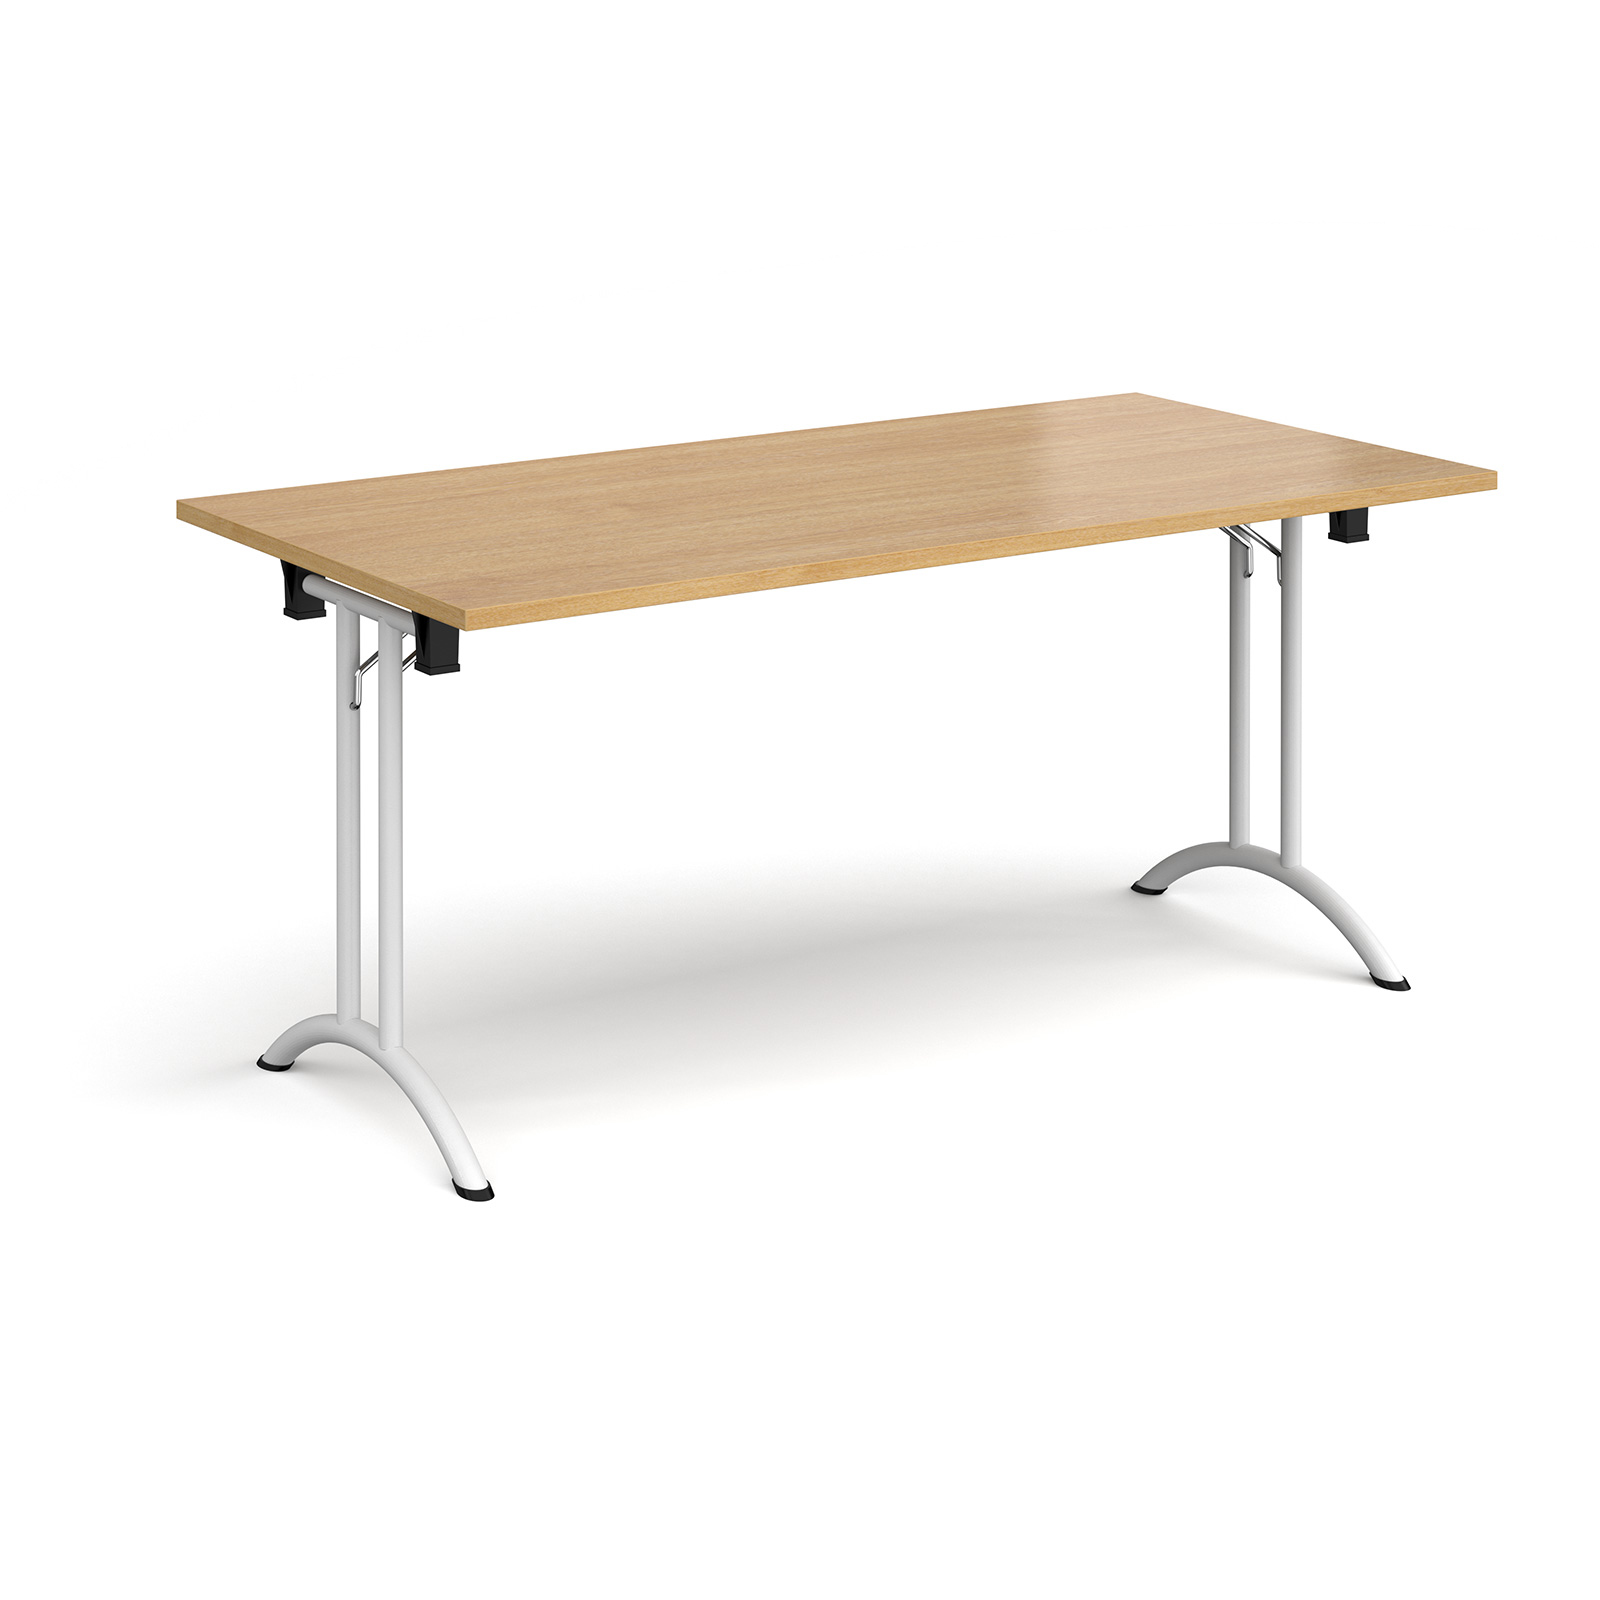 Rectangular Folding Leg Table With White And Curved Foot Rails 1600mm X 800mm Oak